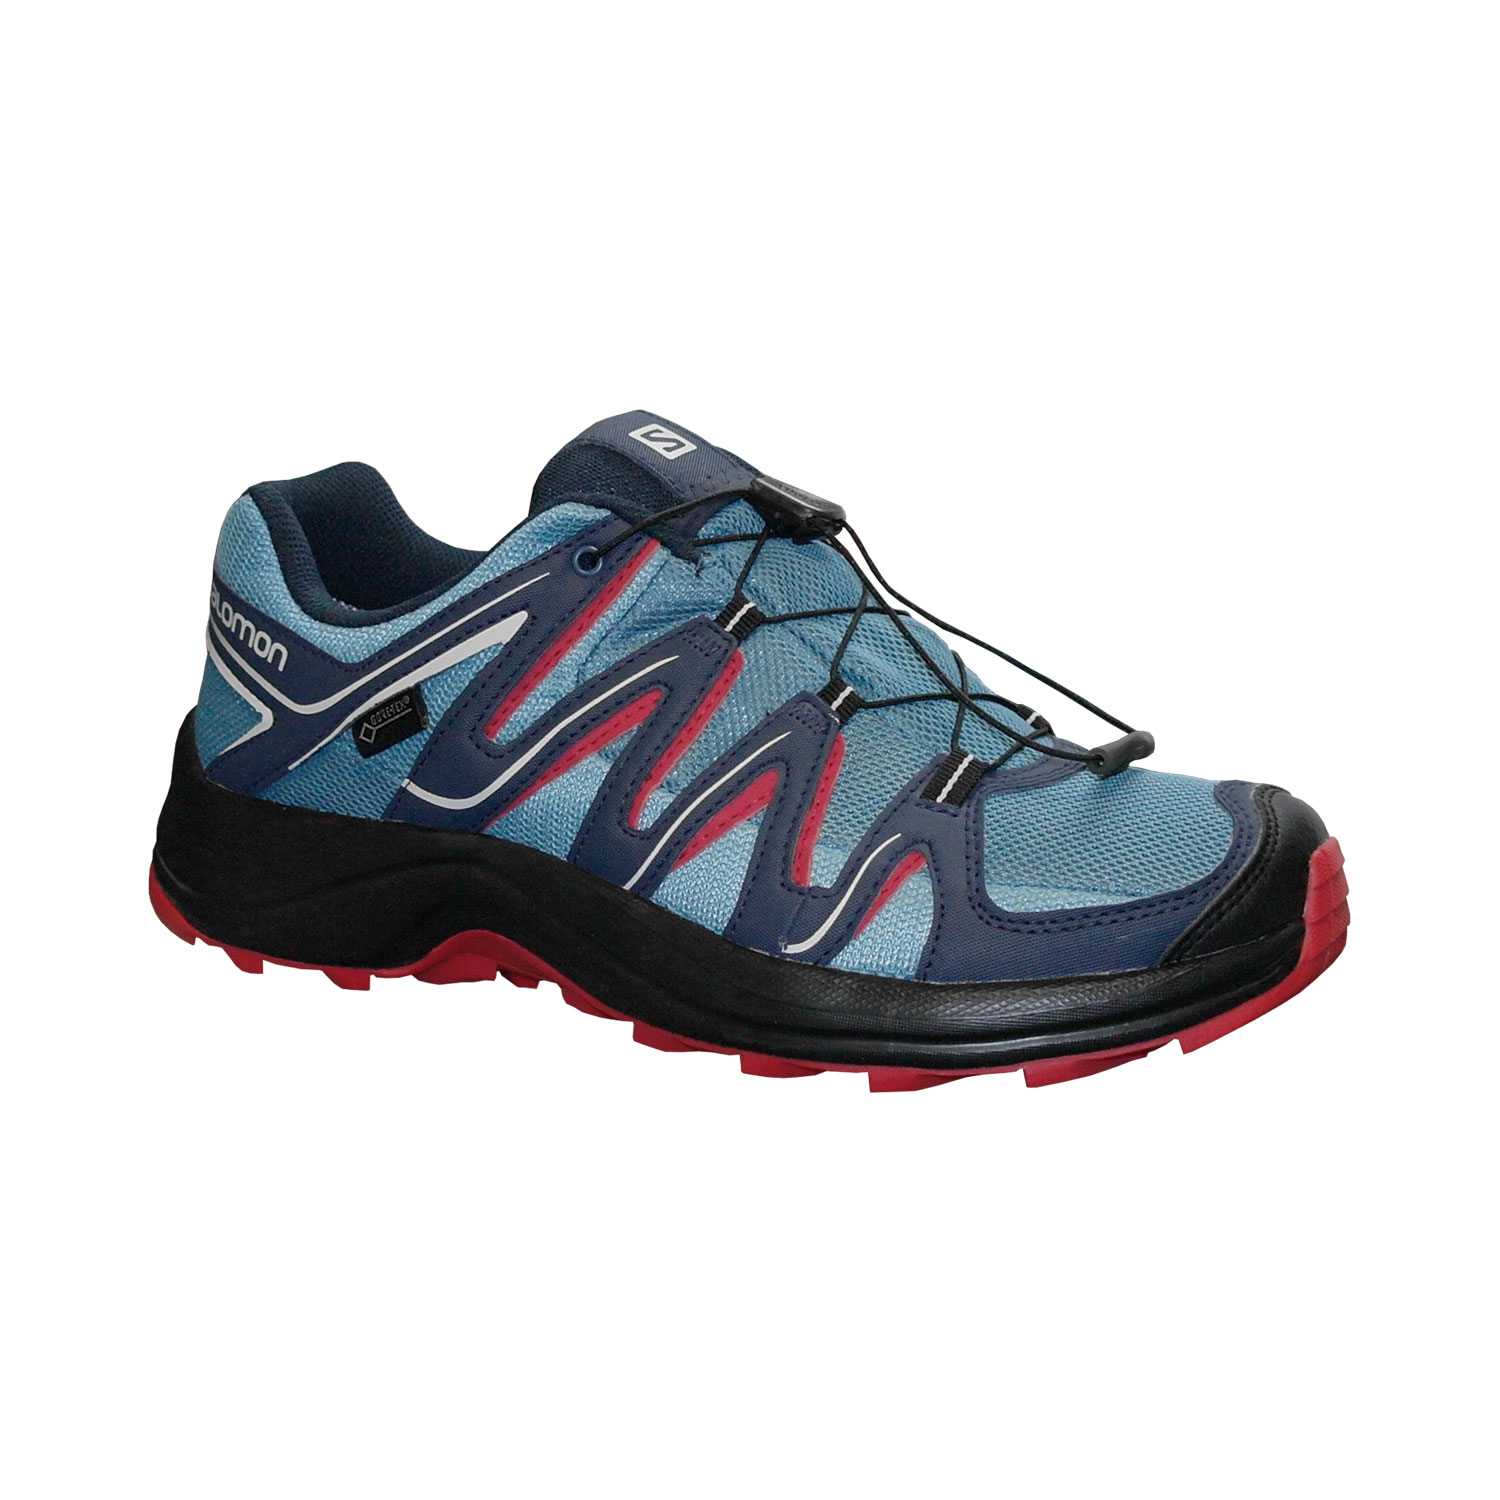 Salomon XA Fuster GTX Damen Walkingschuhe – Bild 1